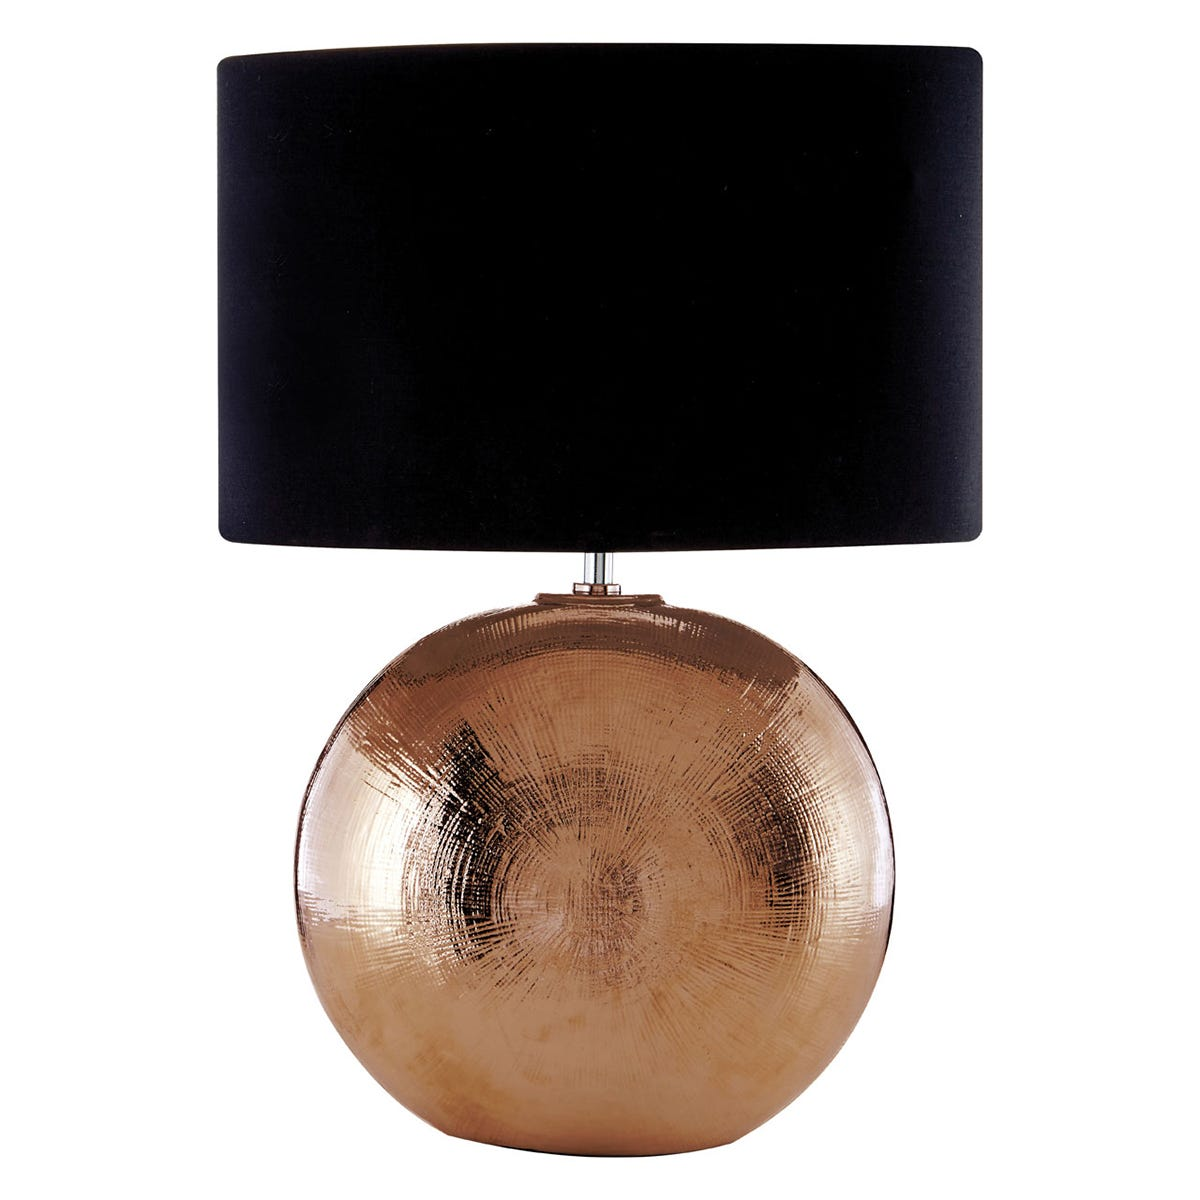 Premier Housewares Jarvis Table Lamp in Ceramic with Scratched Copper & Black Shade